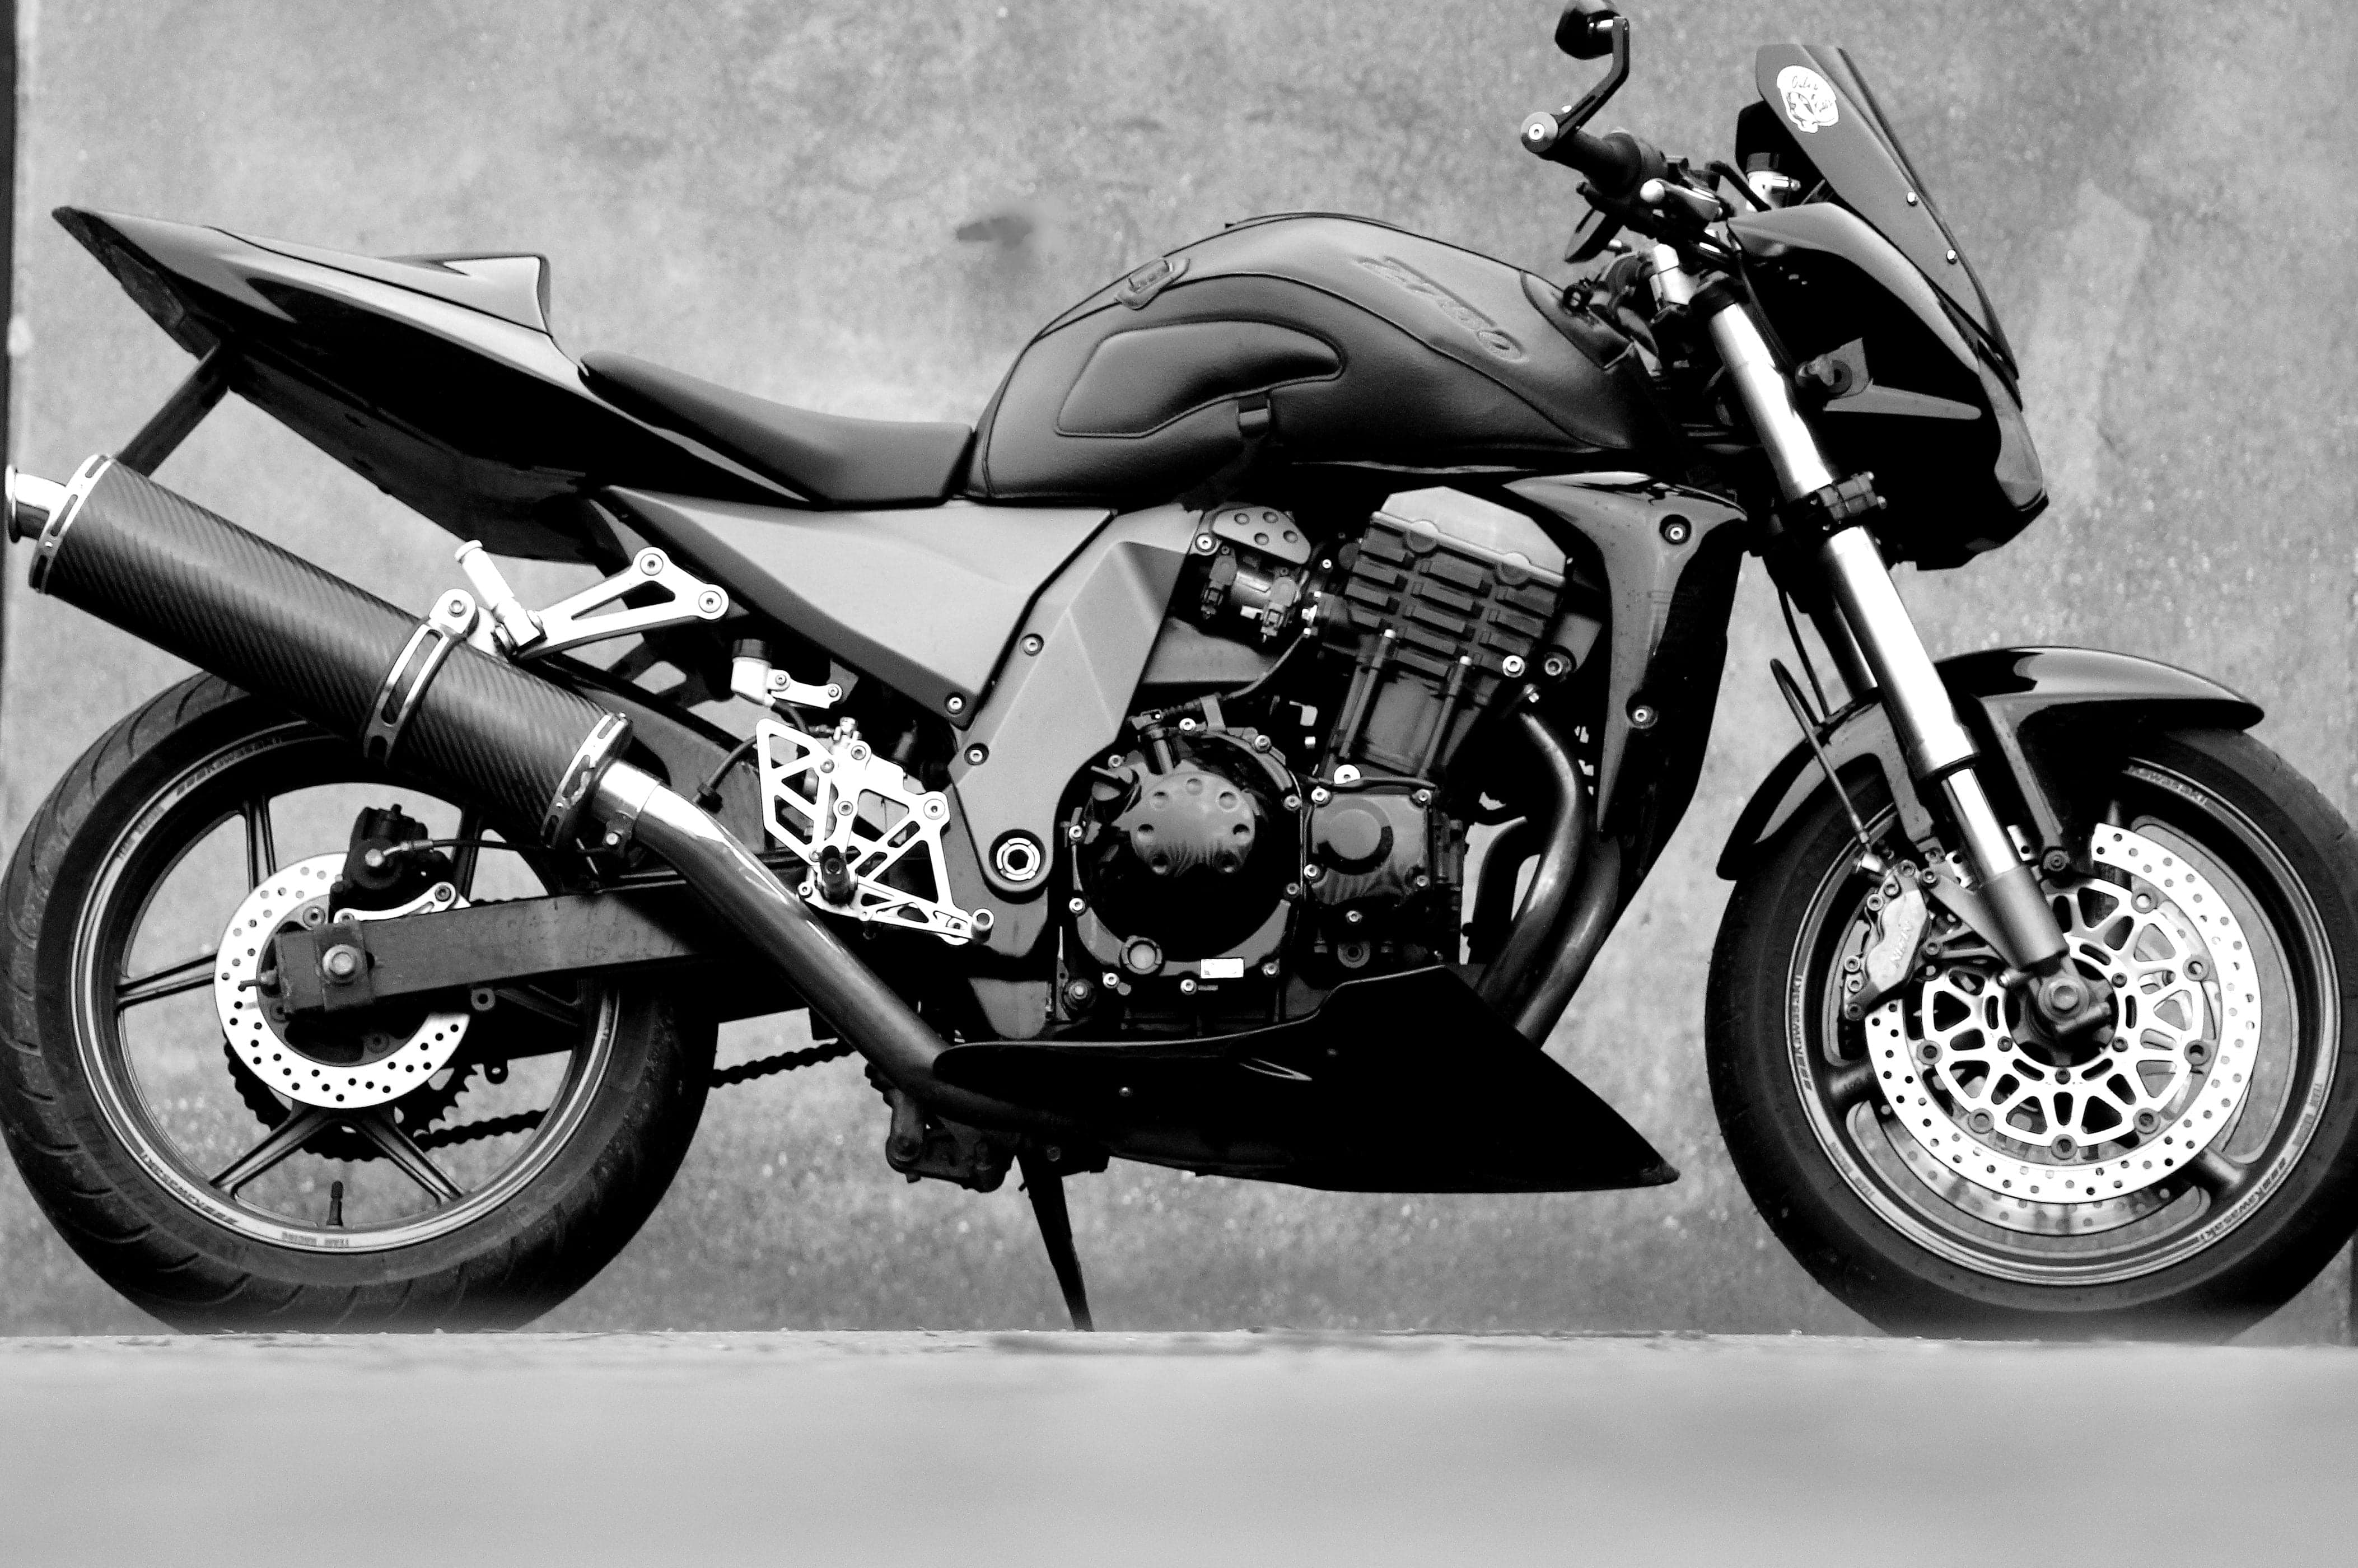 20+ Kawasaki Z750 Wallpapers HD